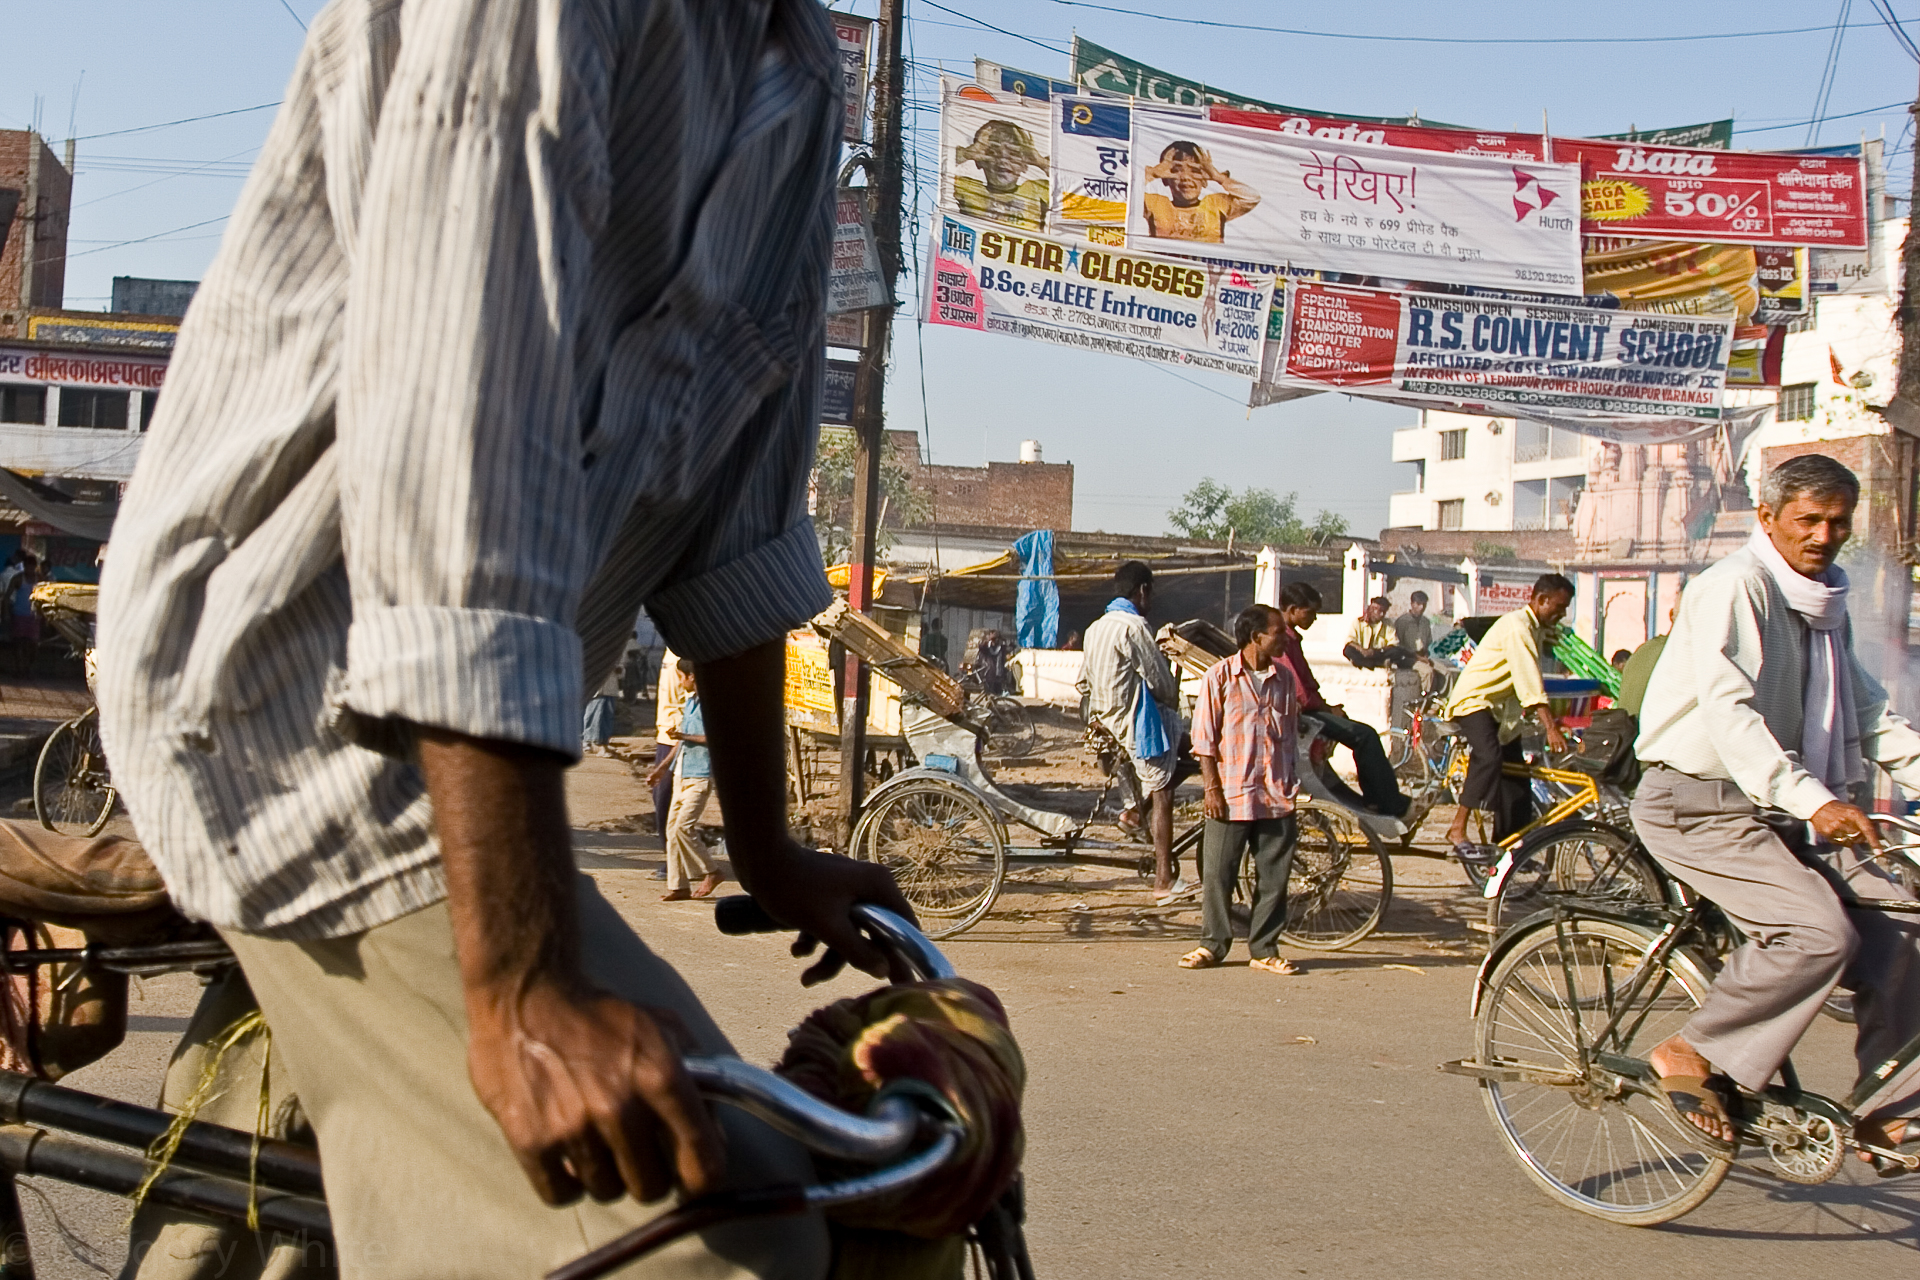 The streets of Varansi are a study in controlled chaos.